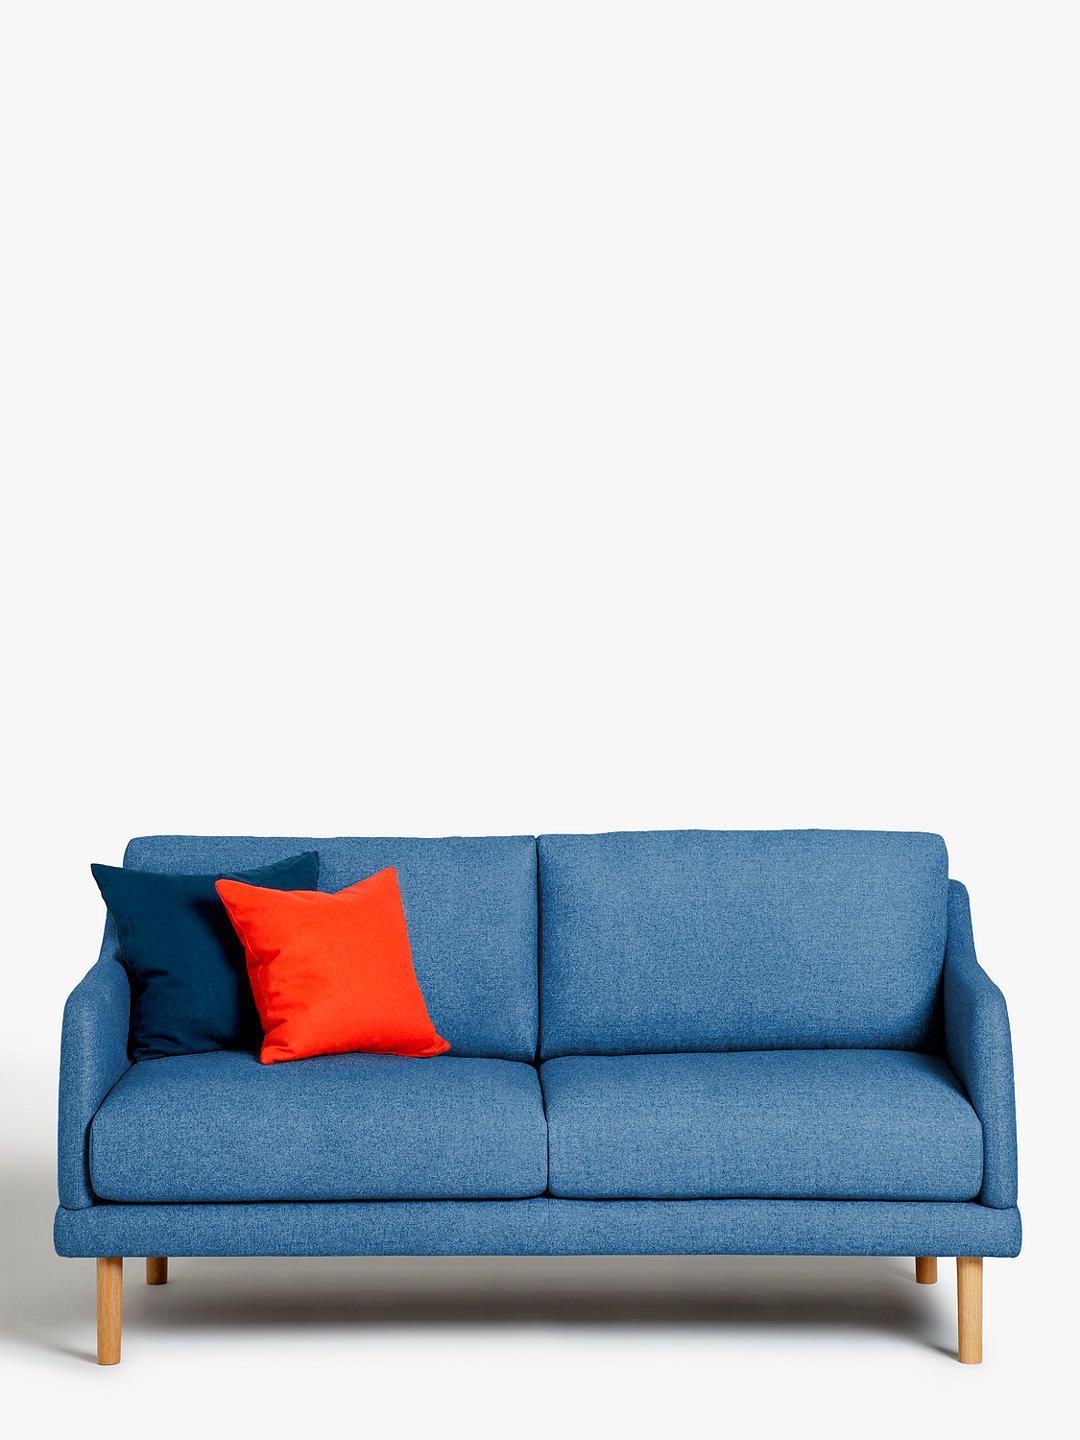 Pleasant House By John Lewis Sweep Small 2 Seater Sofa Light Leg Andrewgaddart Wooden Chair Designs For Living Room Andrewgaddartcom